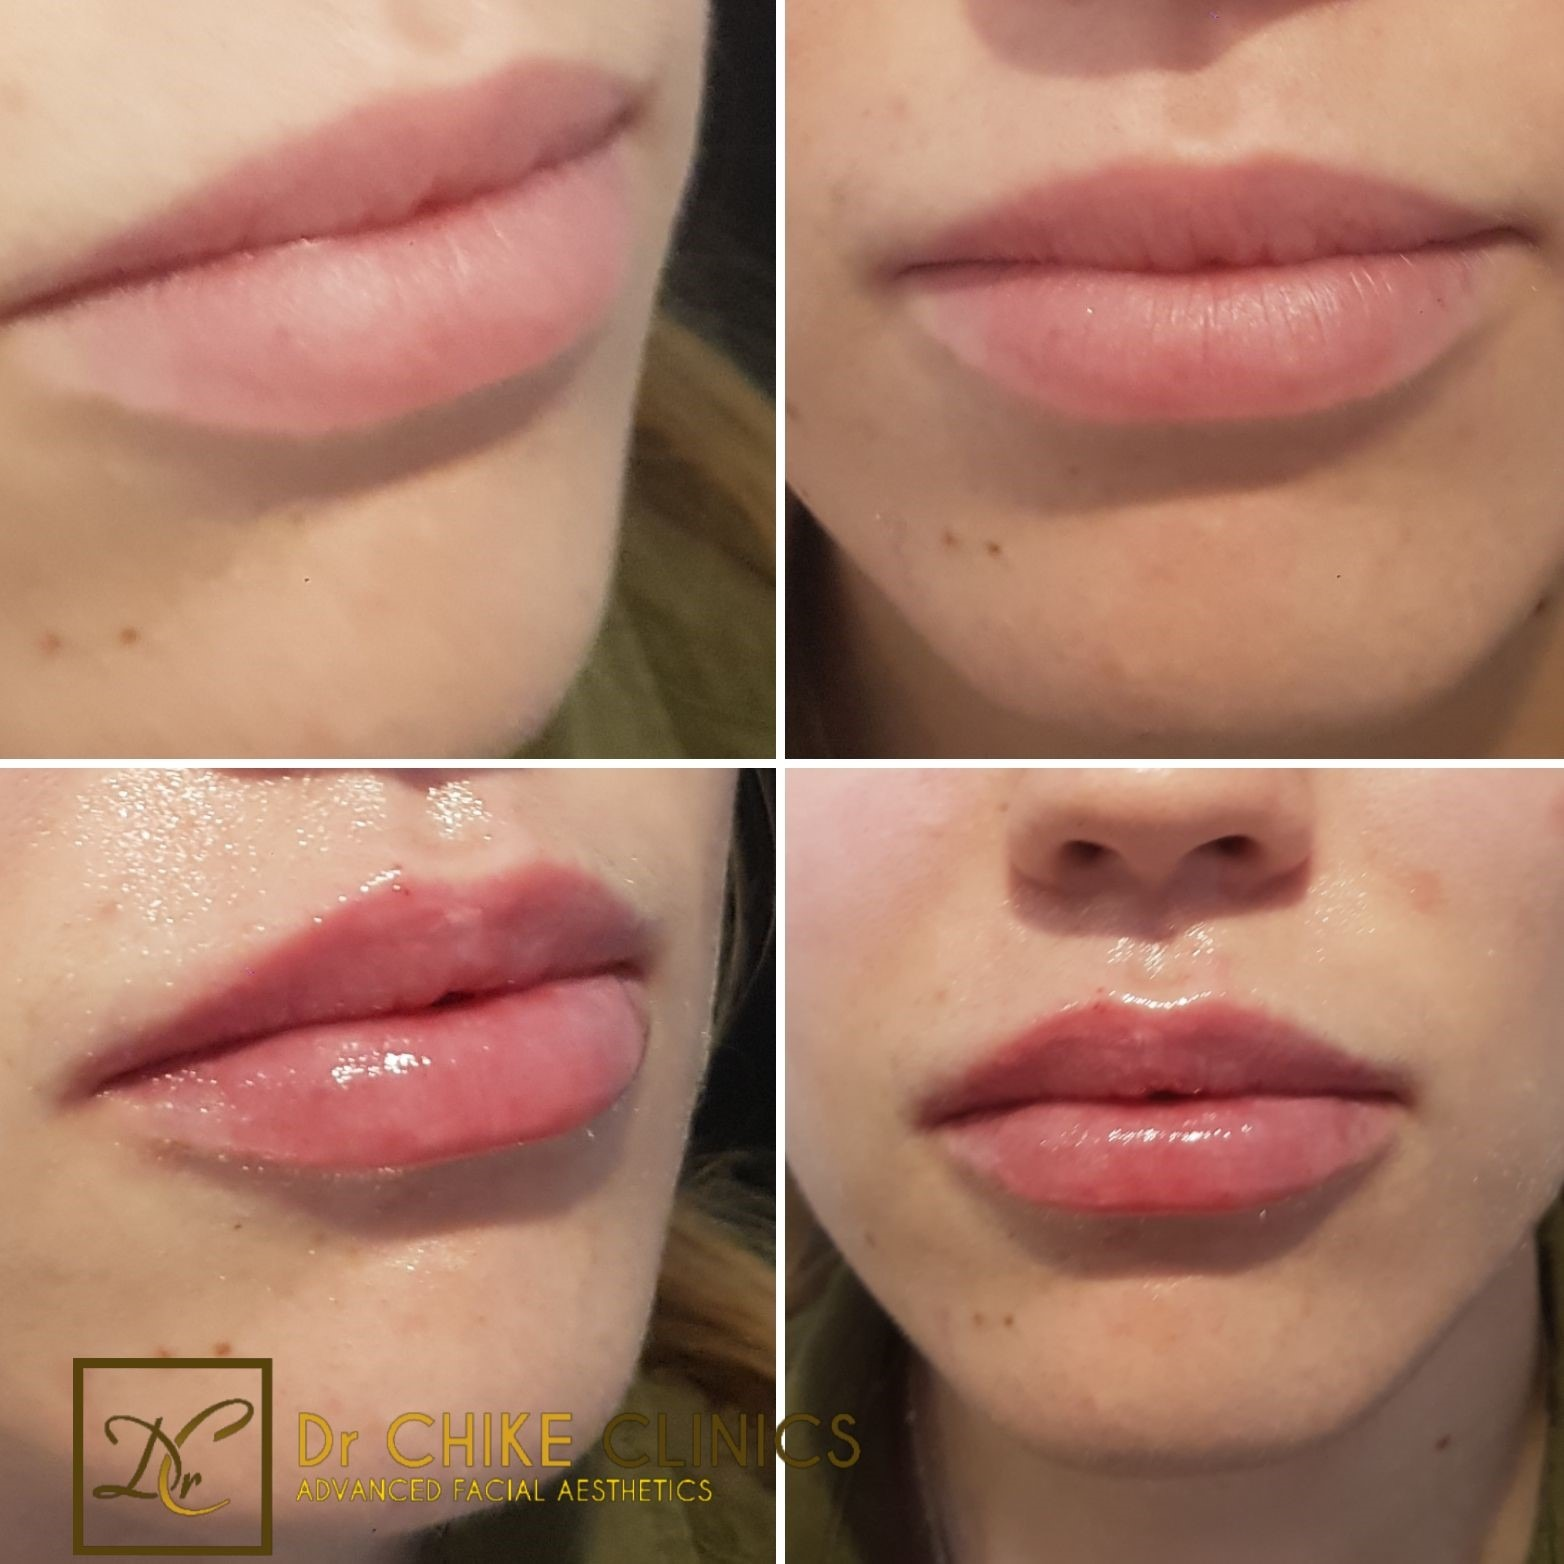 Before and After Images of Lip Fillers